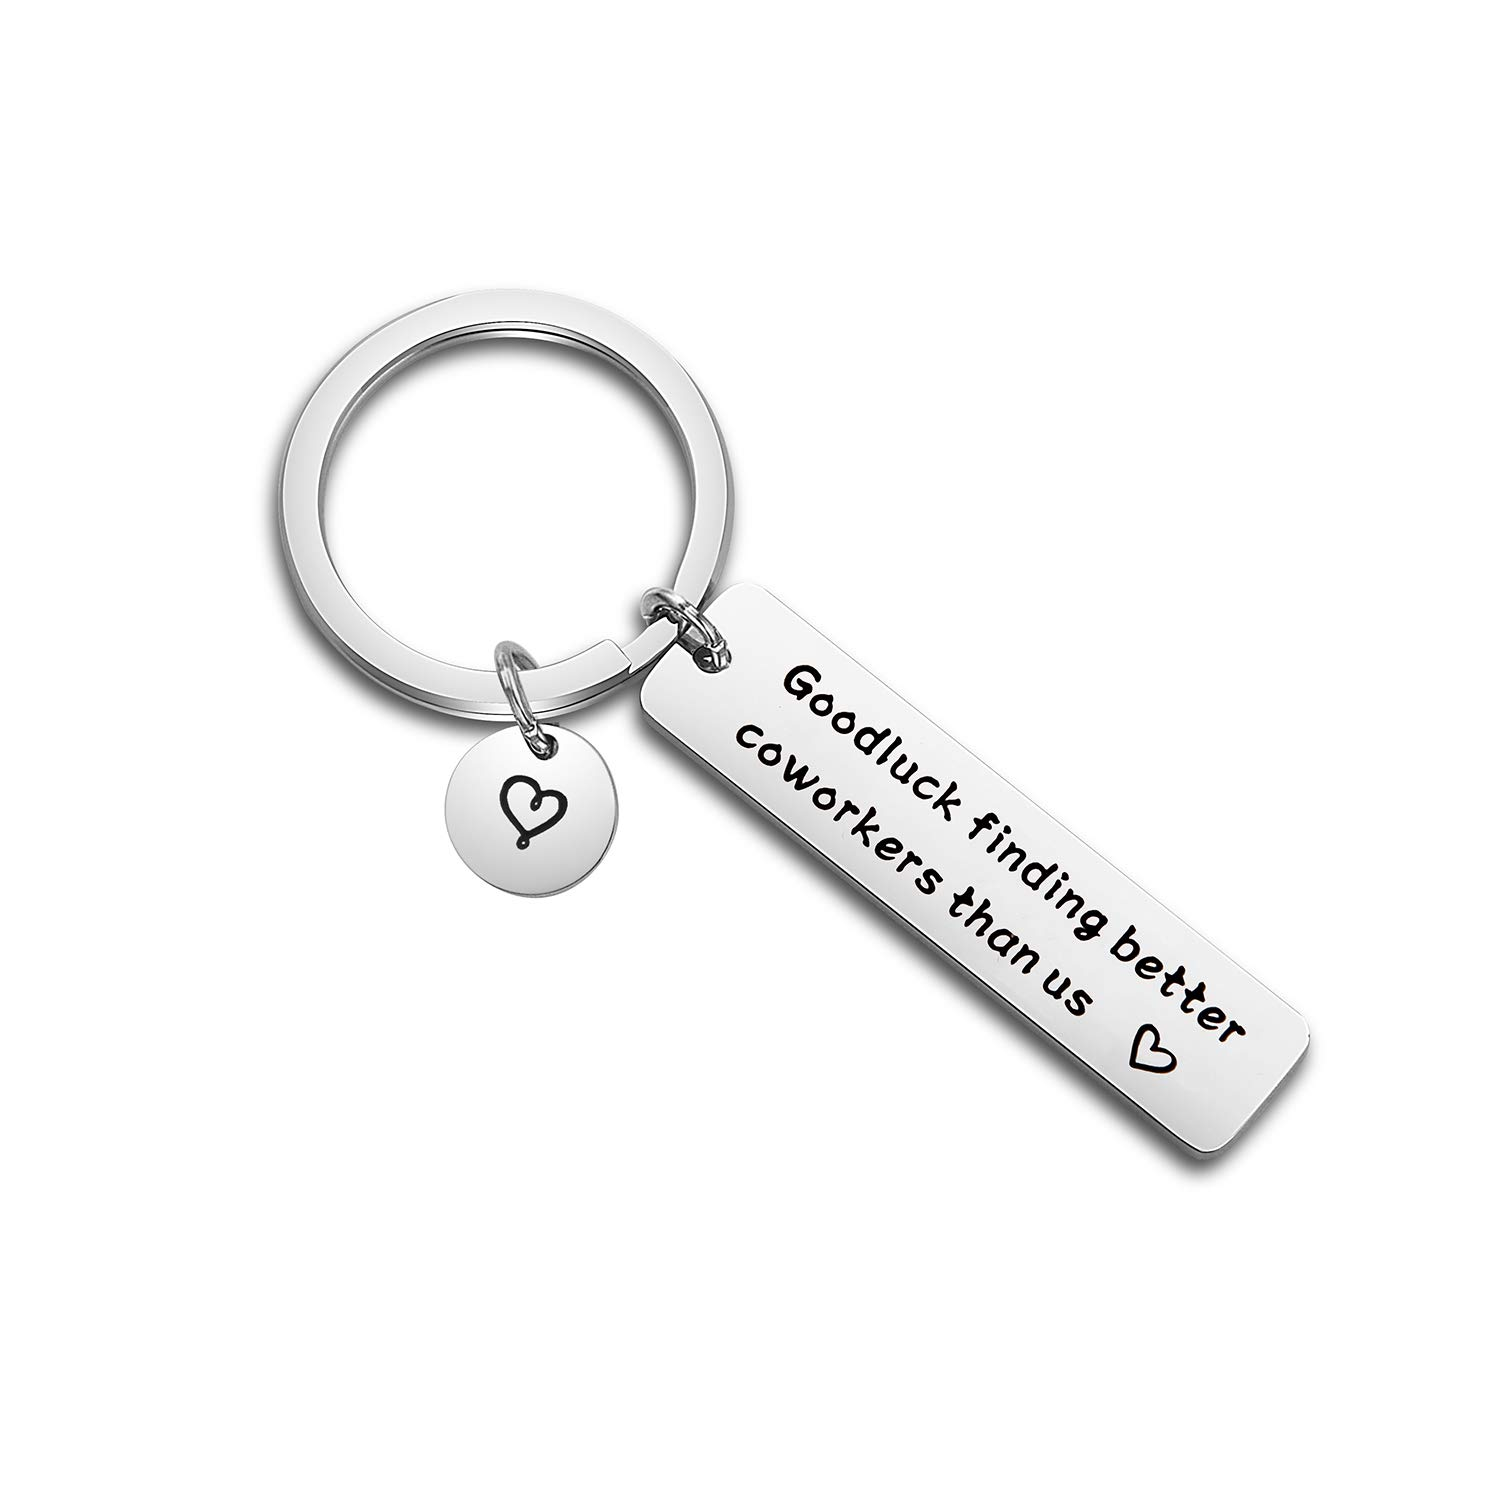 ENSIANTH Coworker Leaving Away Gift Coworker Retirement Keychain Goodbye Gift for Colleague B07GS9RRM3_US